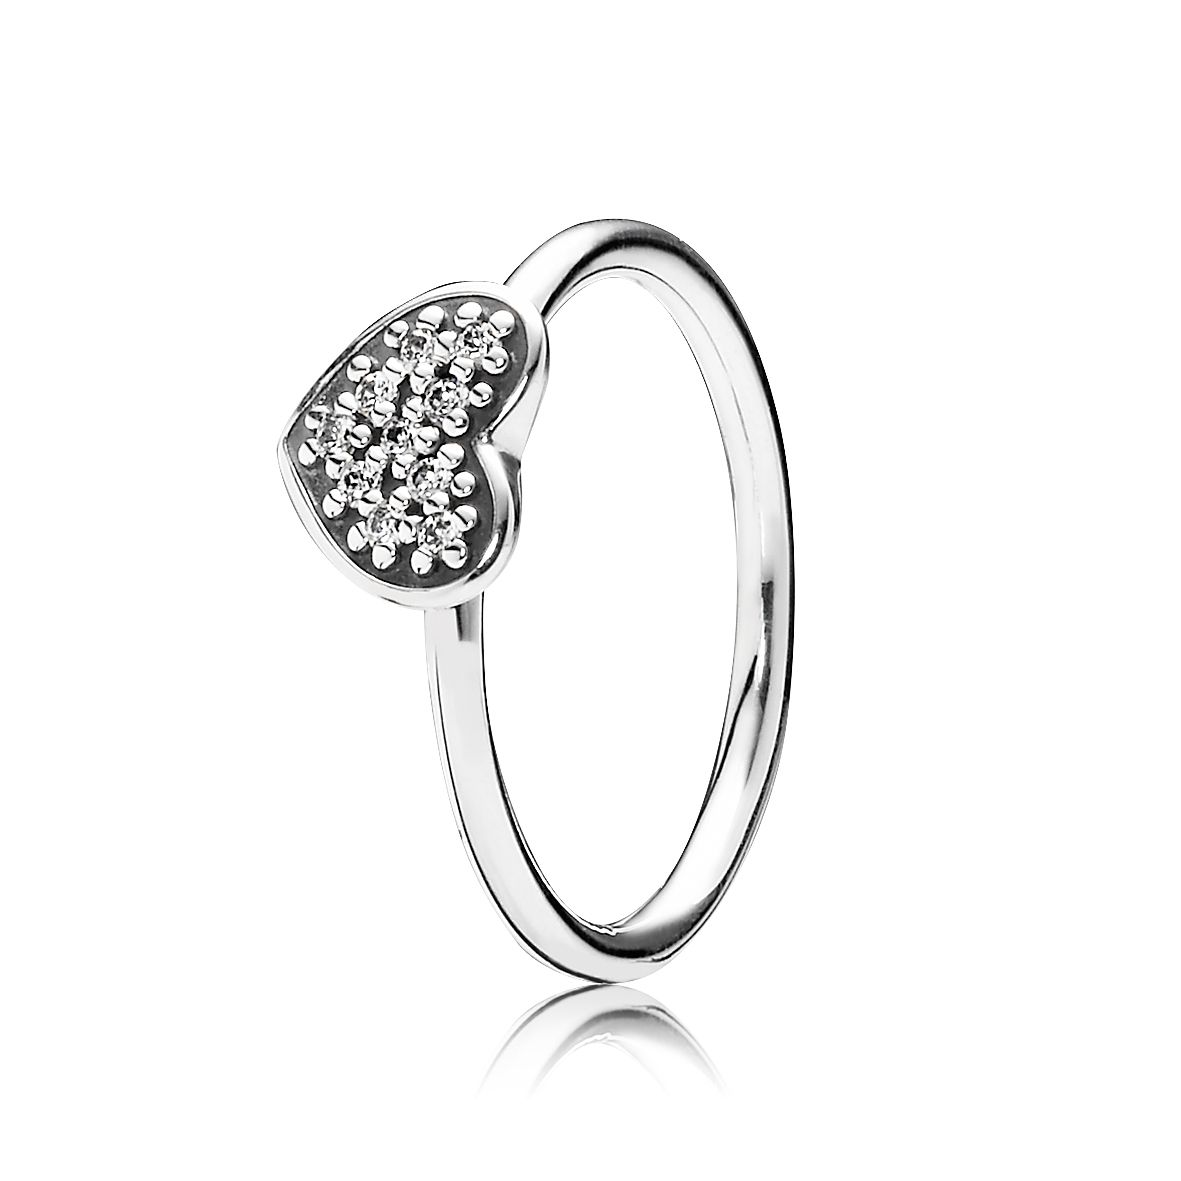 Heart silver ring with pave set cubic zirconia